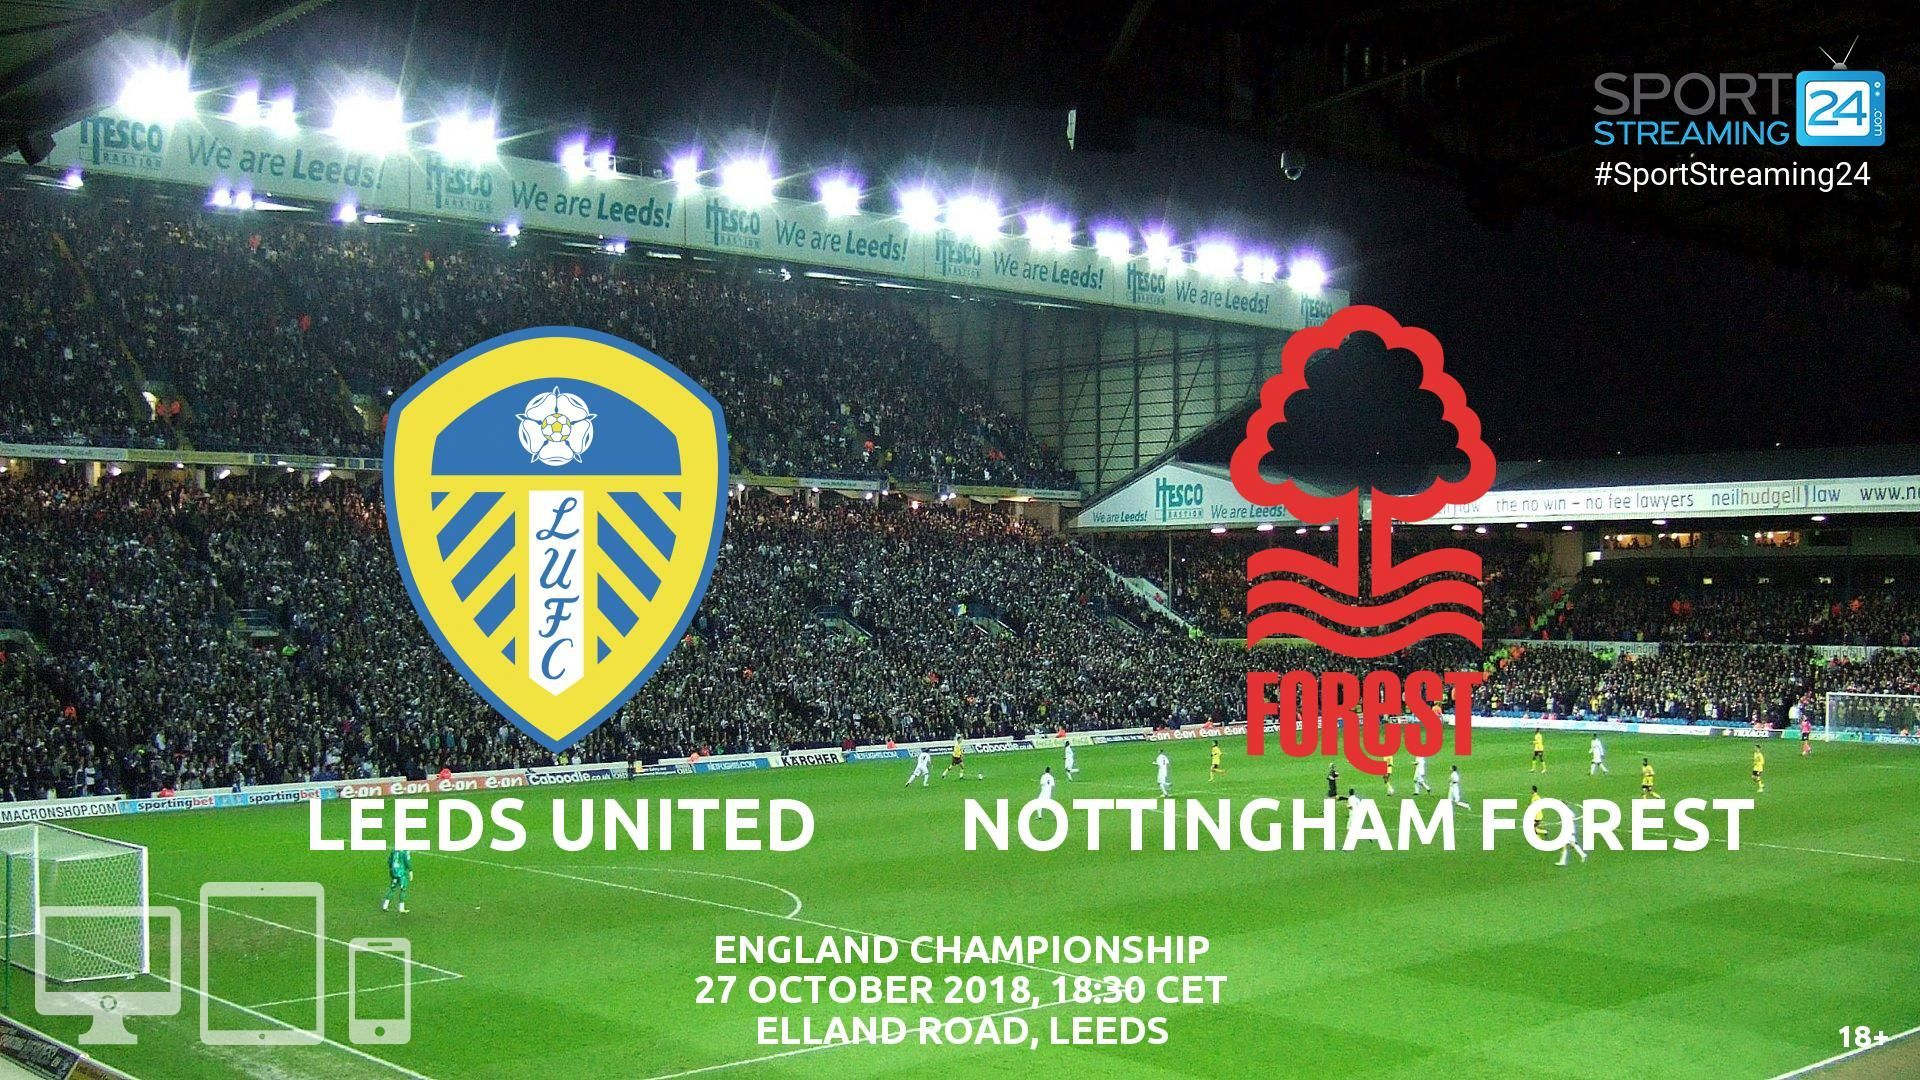 Streaming News And Match Previews Sportstreaming24 England Championship Nottingham Forest Streaming